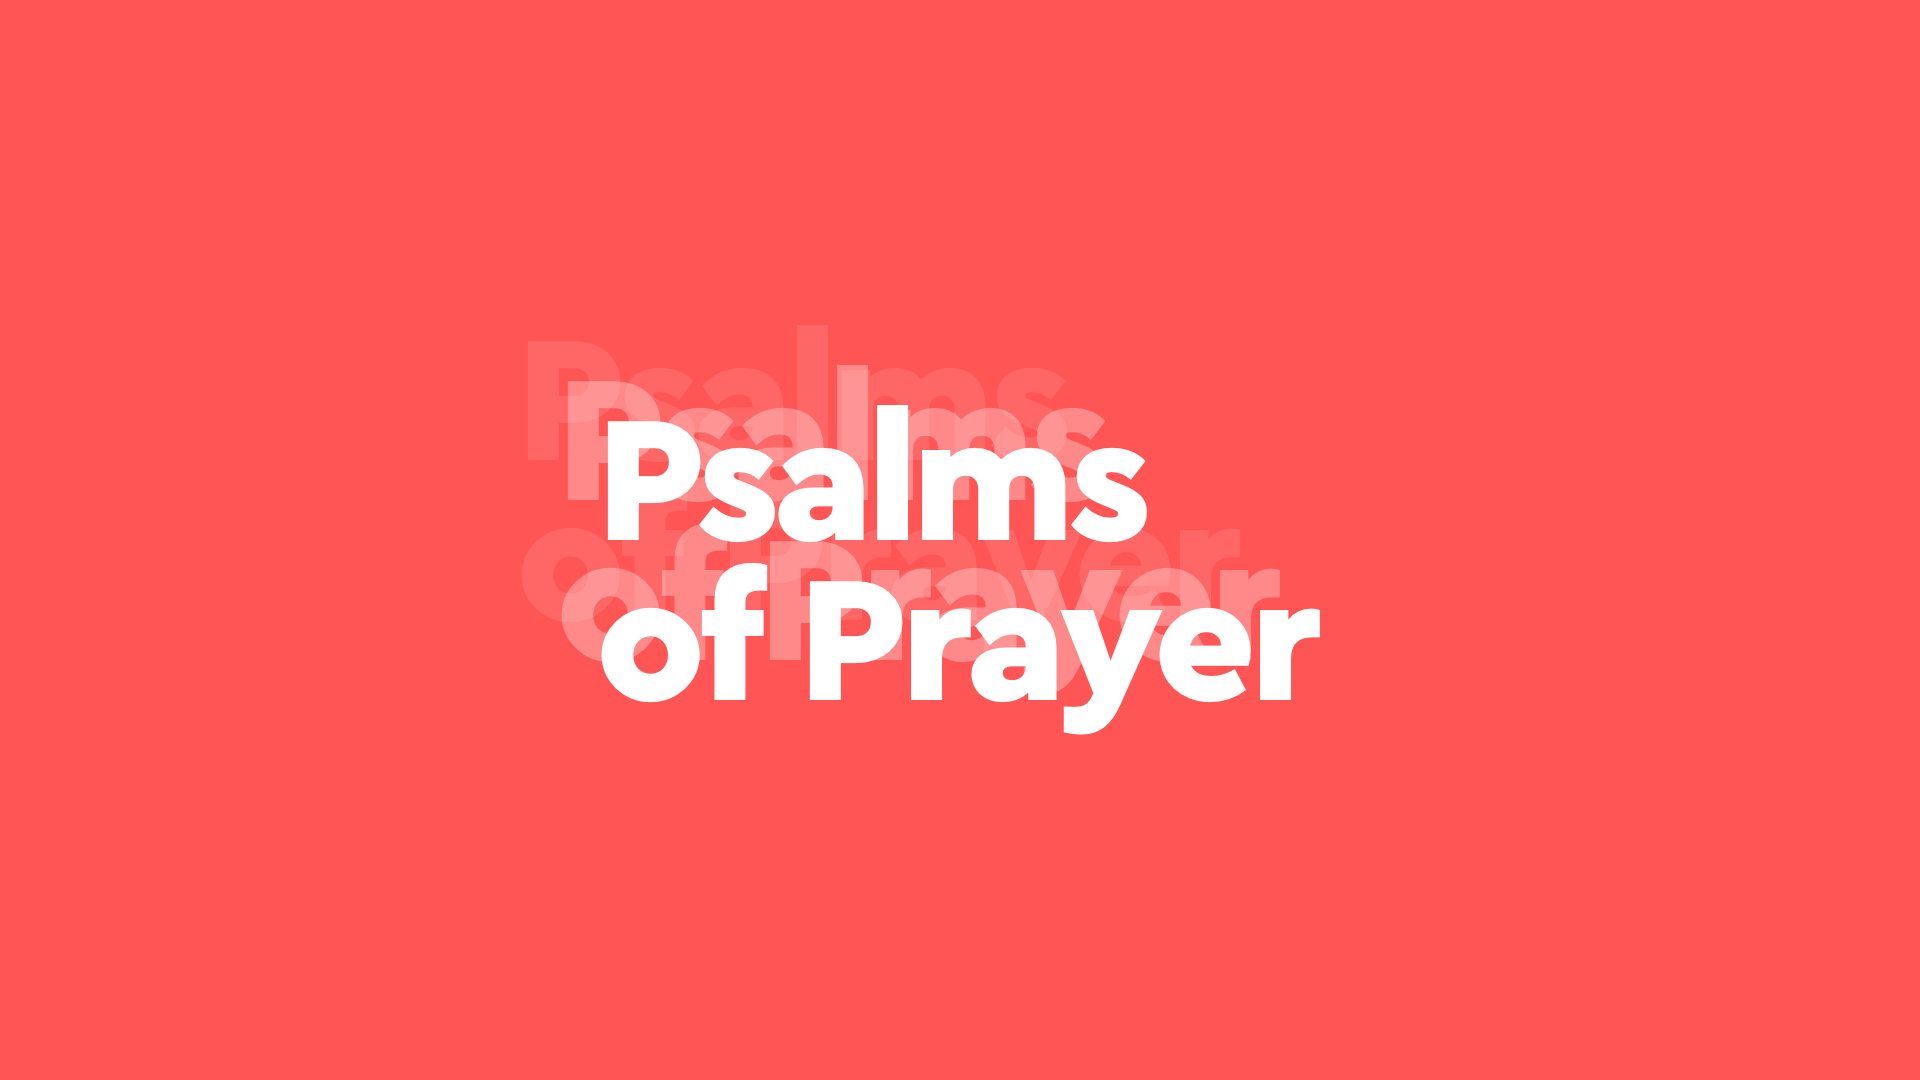 Psalms of Prayer